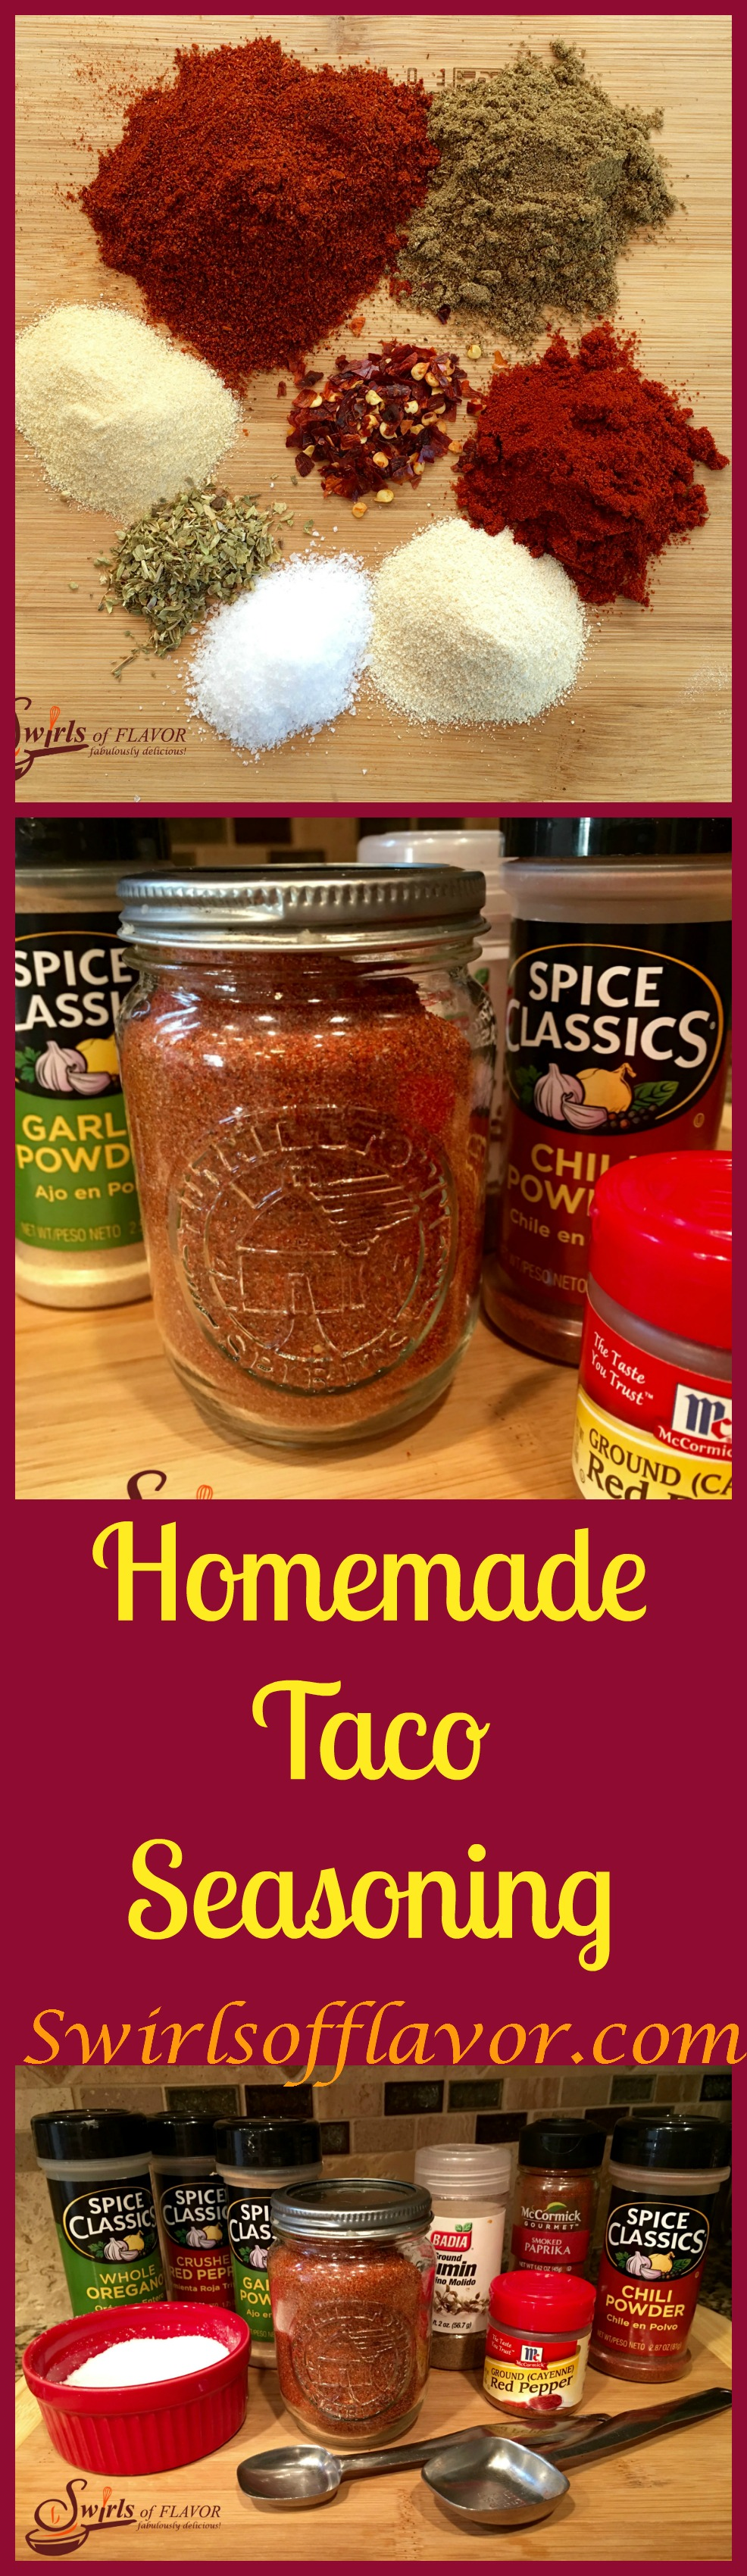 Homemade Taco Seasoning is an easy recipe made with basic spices for just pennies. You'll love being able to adjust the spice level and control the salt and make this easy taco seasoning recipe in batches. Perfect for gift giving too! #tacoseasoning #homemade #homemadeseasoning #easyrecipe #moneysaving #foodgifts #homemadetacoseasoning #tacoseasoningrecipe #easytacoseasoning #swirlsofflavor